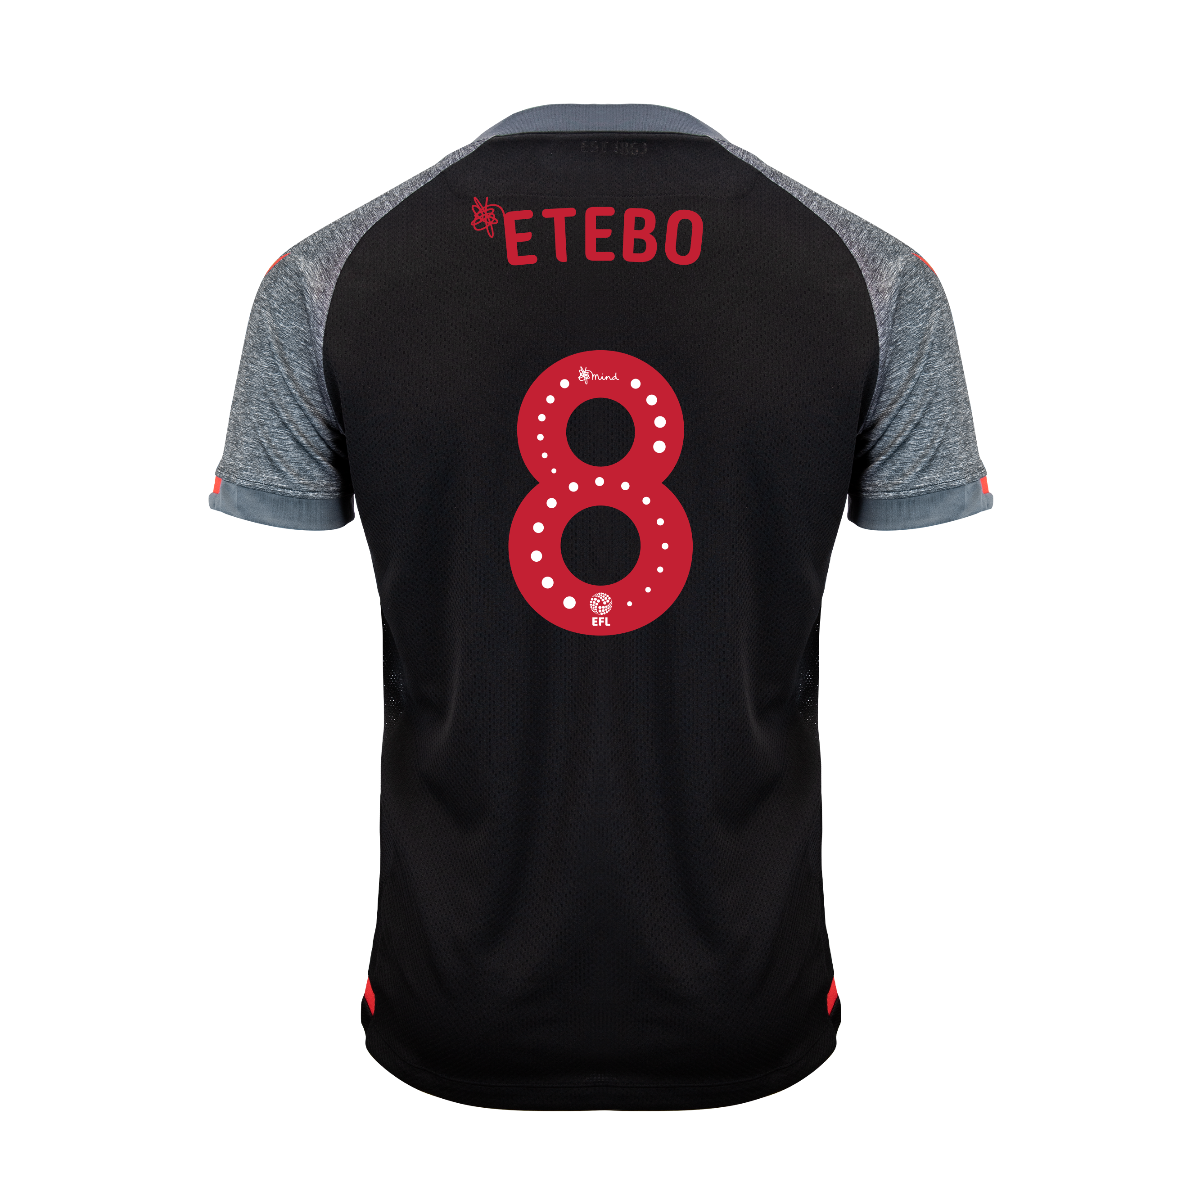 2019/20 Ladies Away Shirt - Etebo